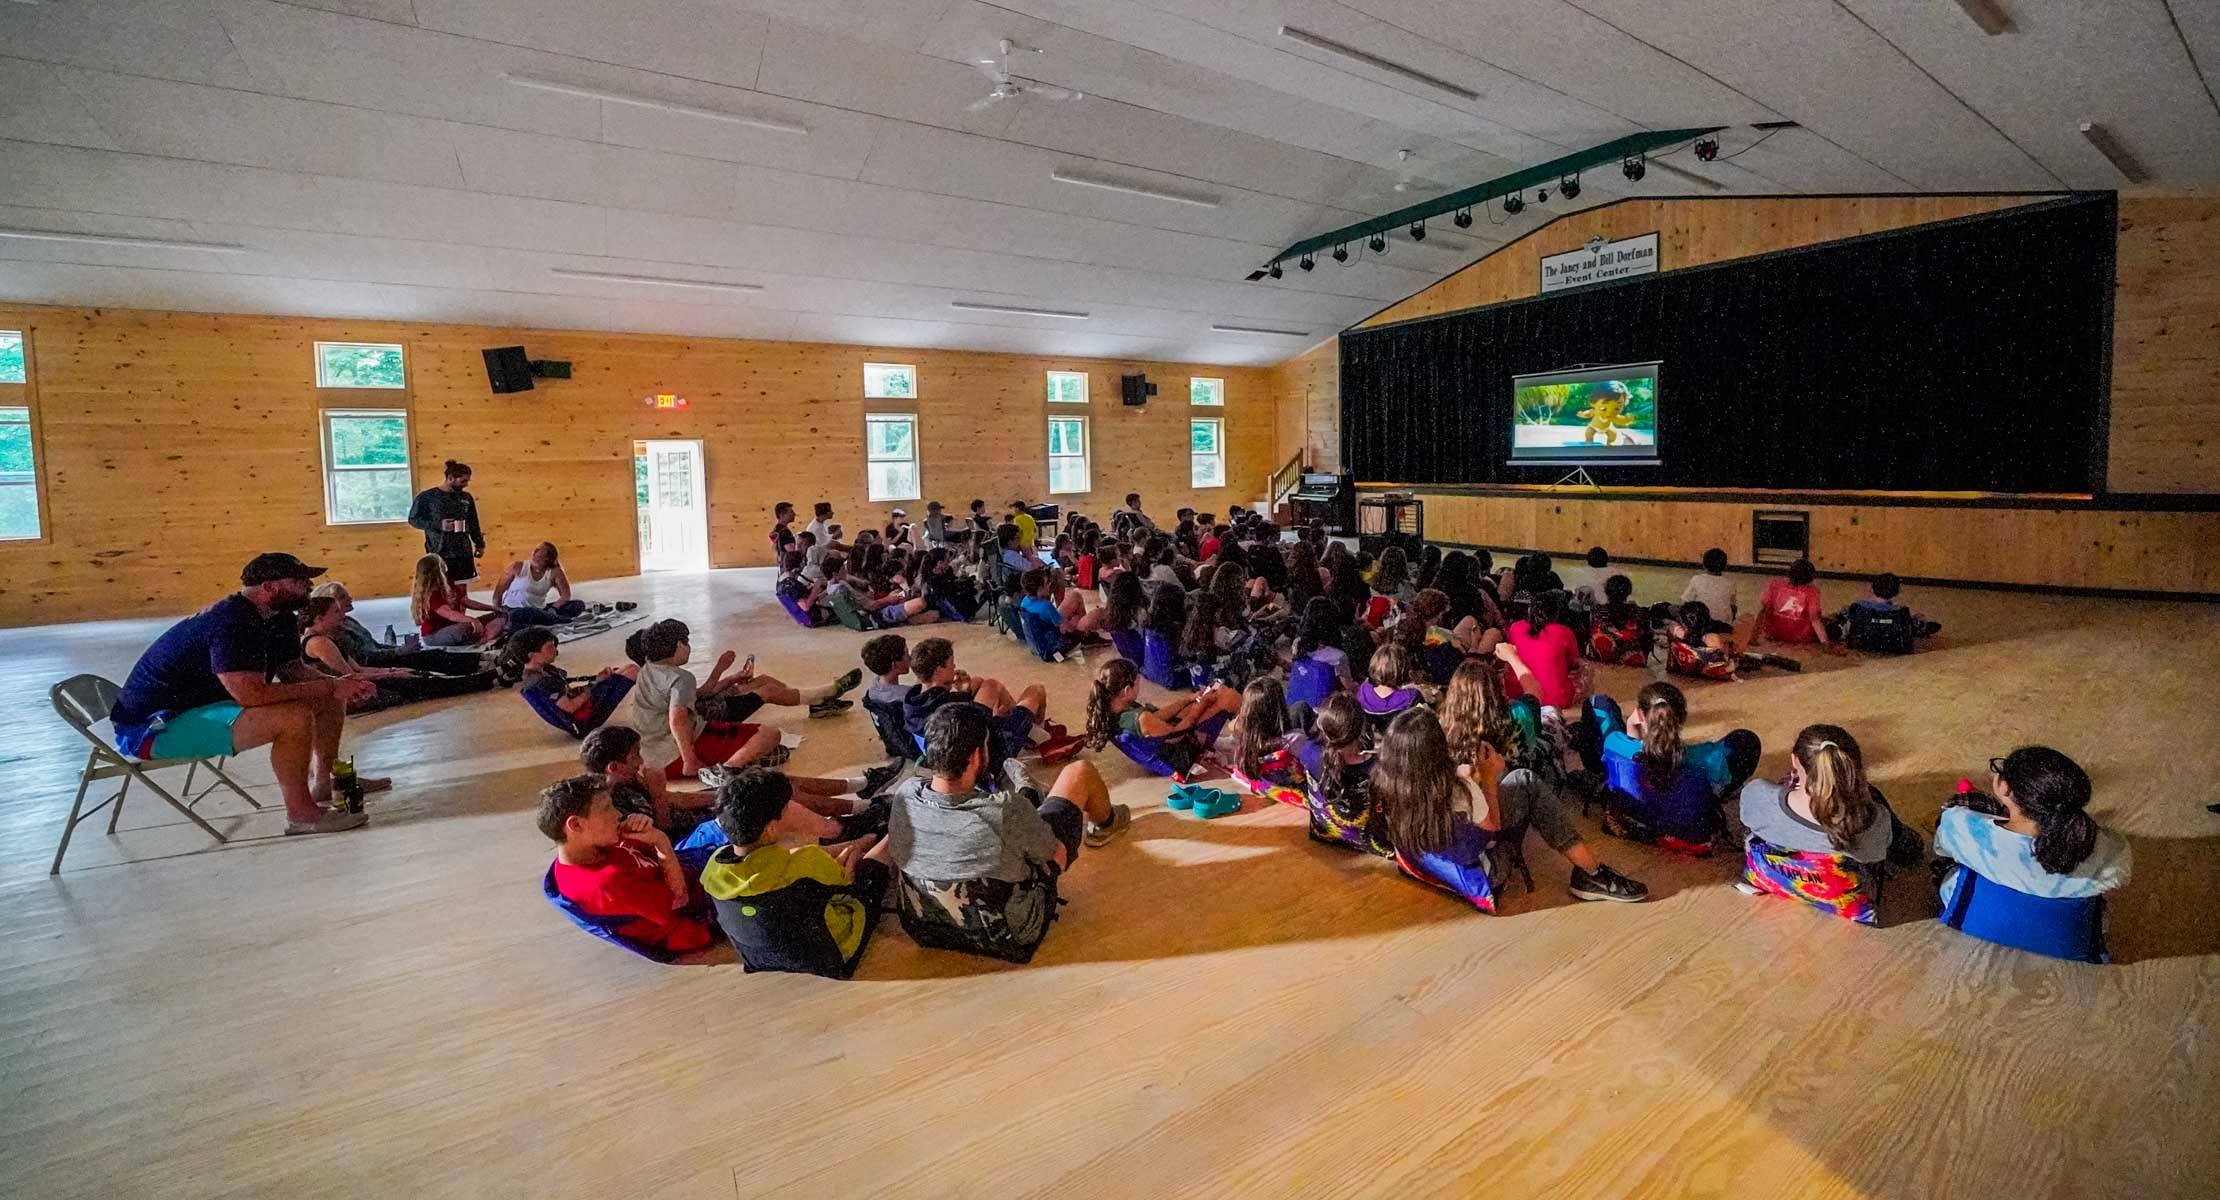 group of campers on the floor watching a movie